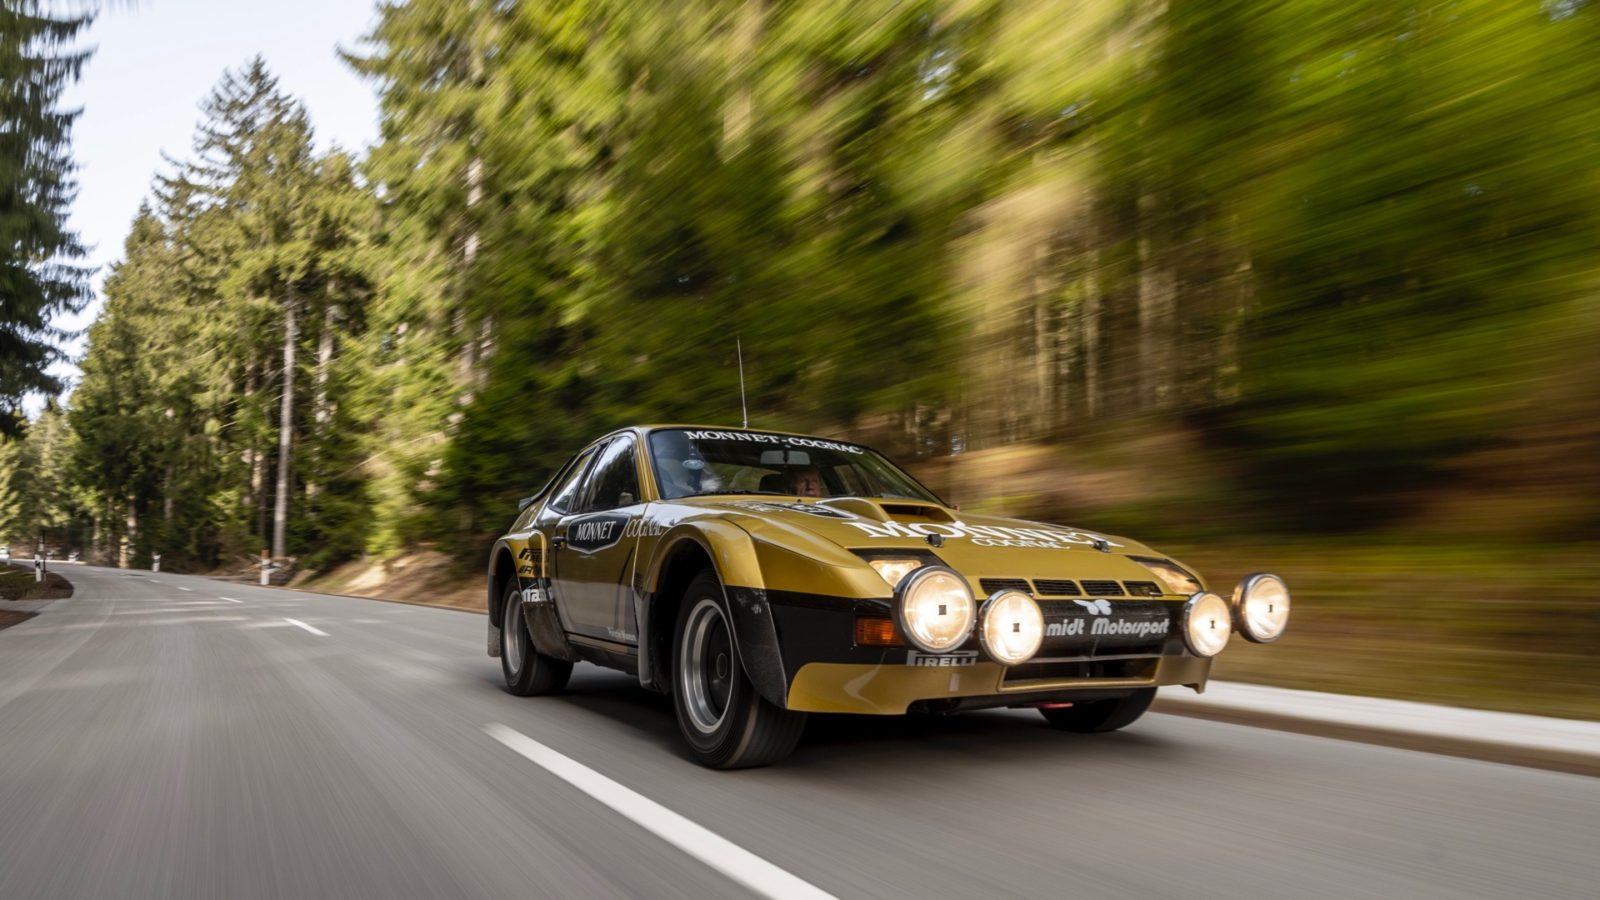 walter-rohrl-and-the-porsche-924-carrera-gts-rally-reunited-after-40-years